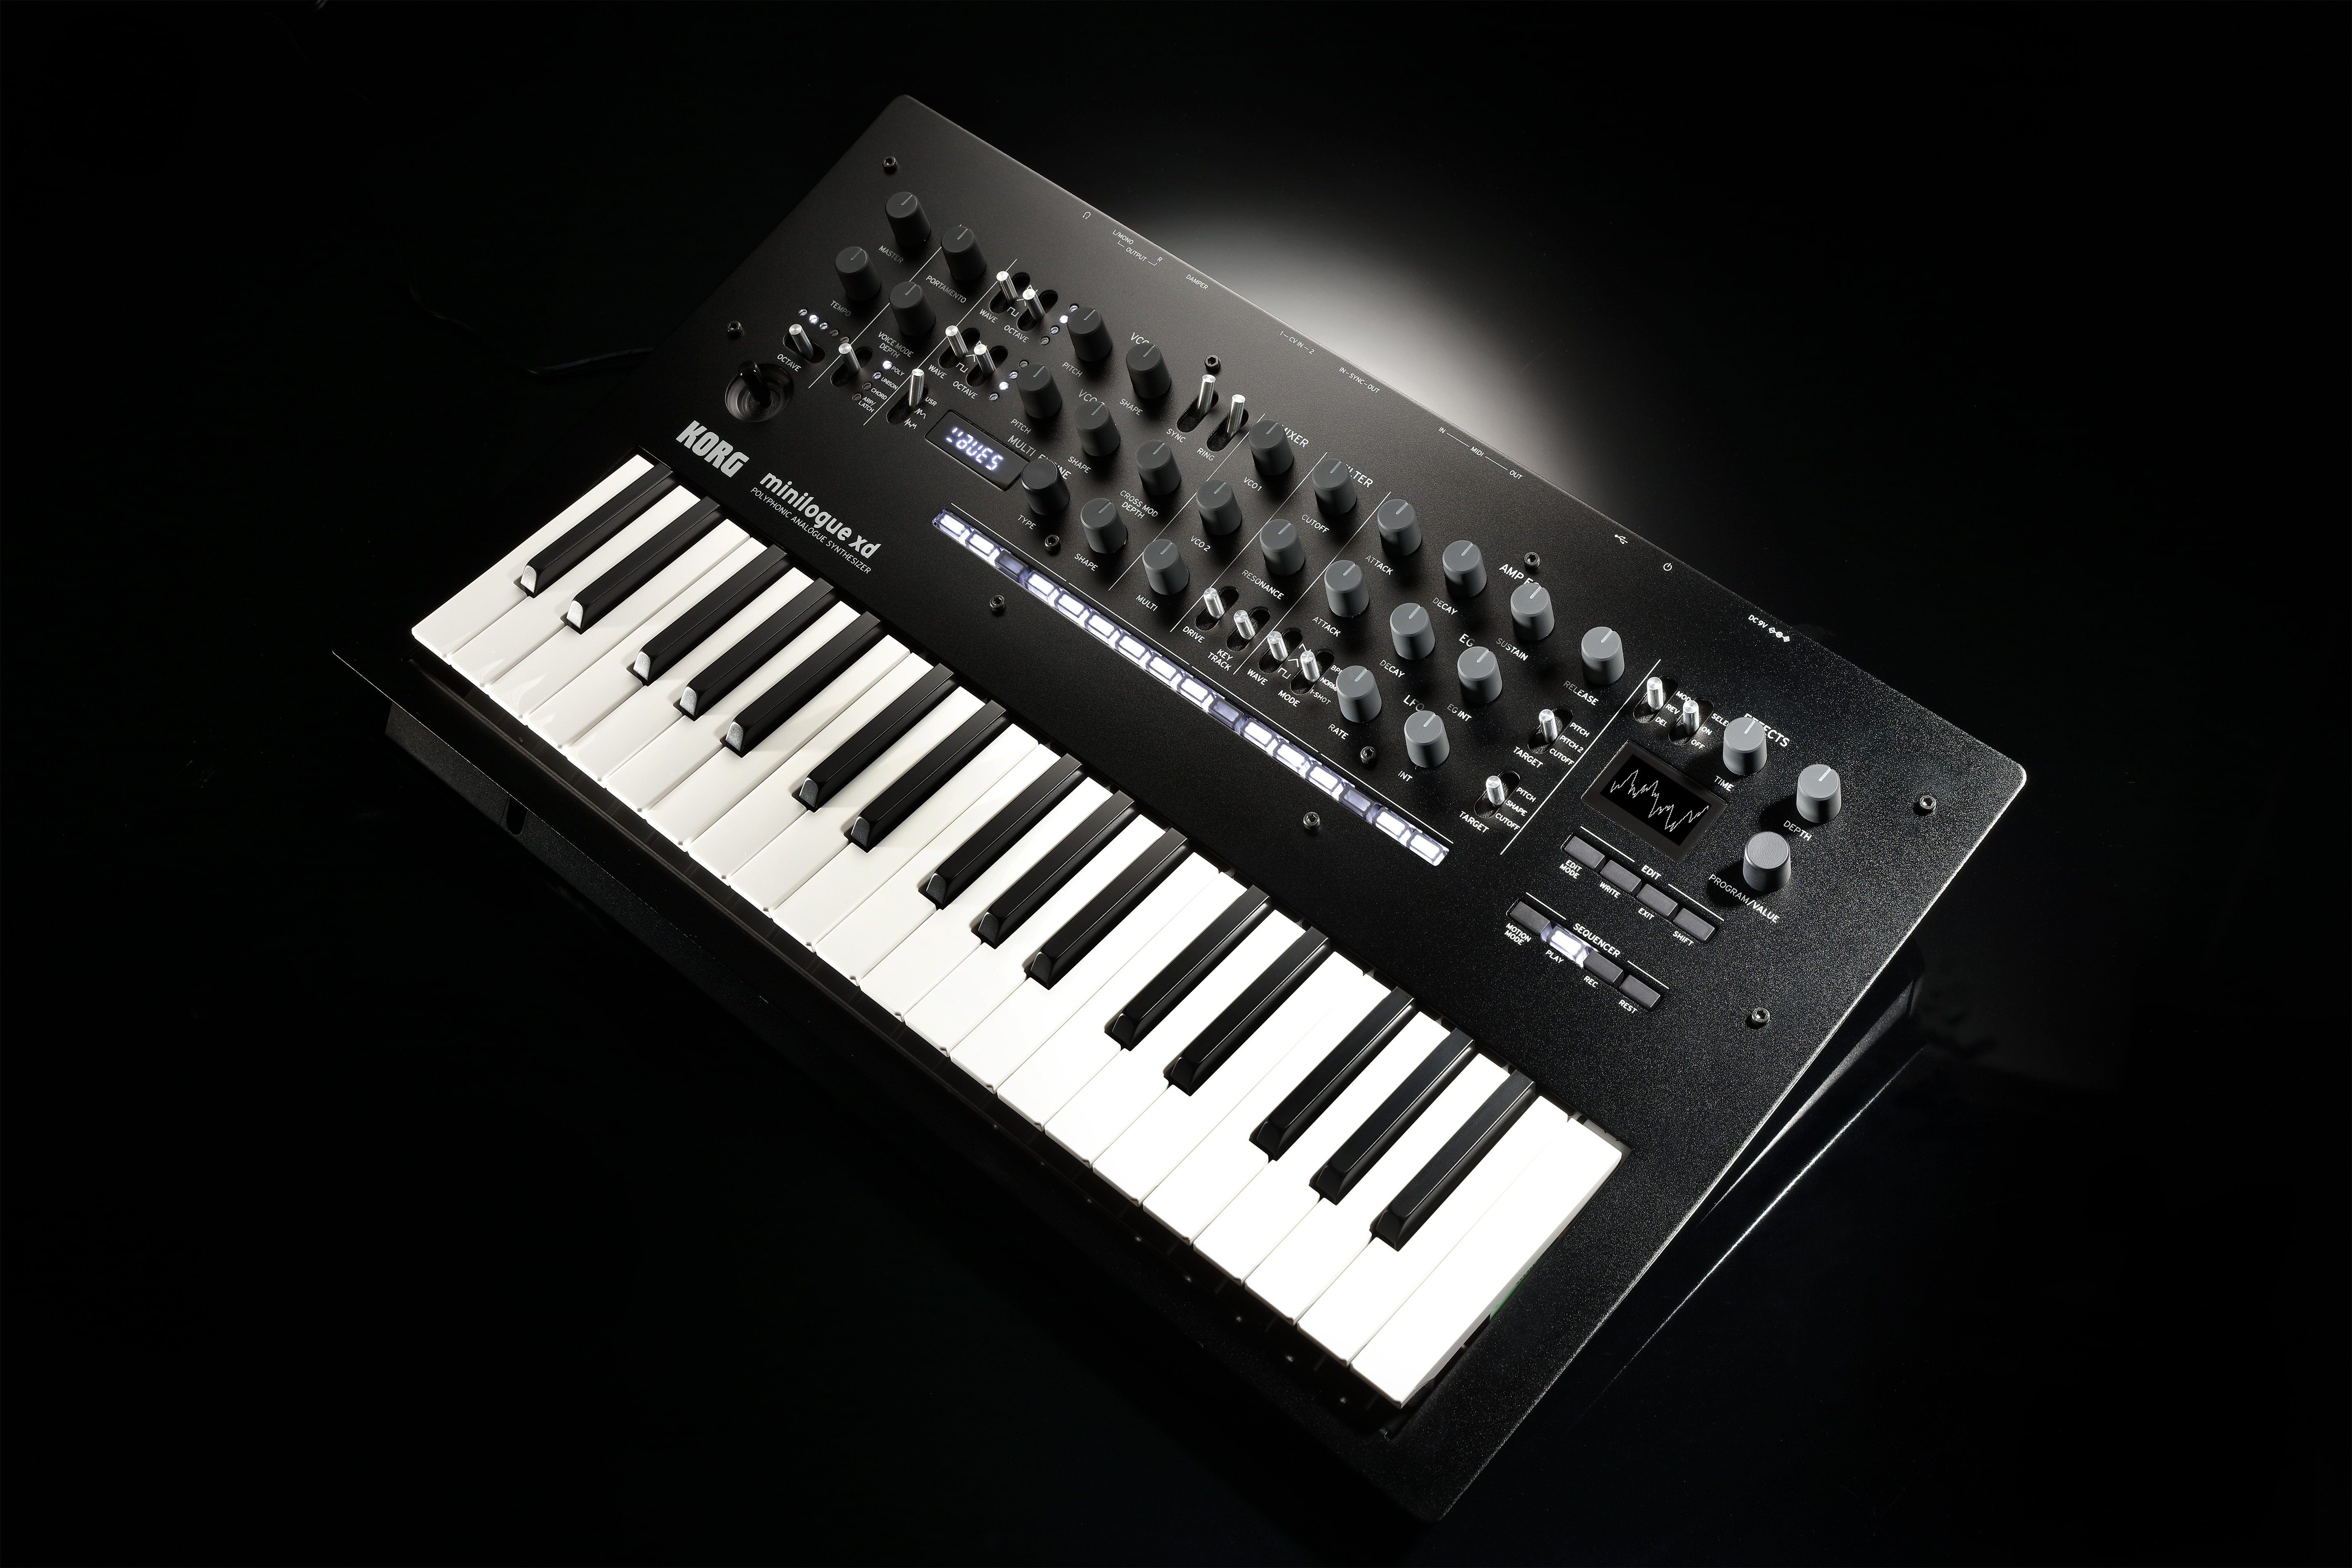 KORG's minilogue xd is a new 4-voice synth with the best of